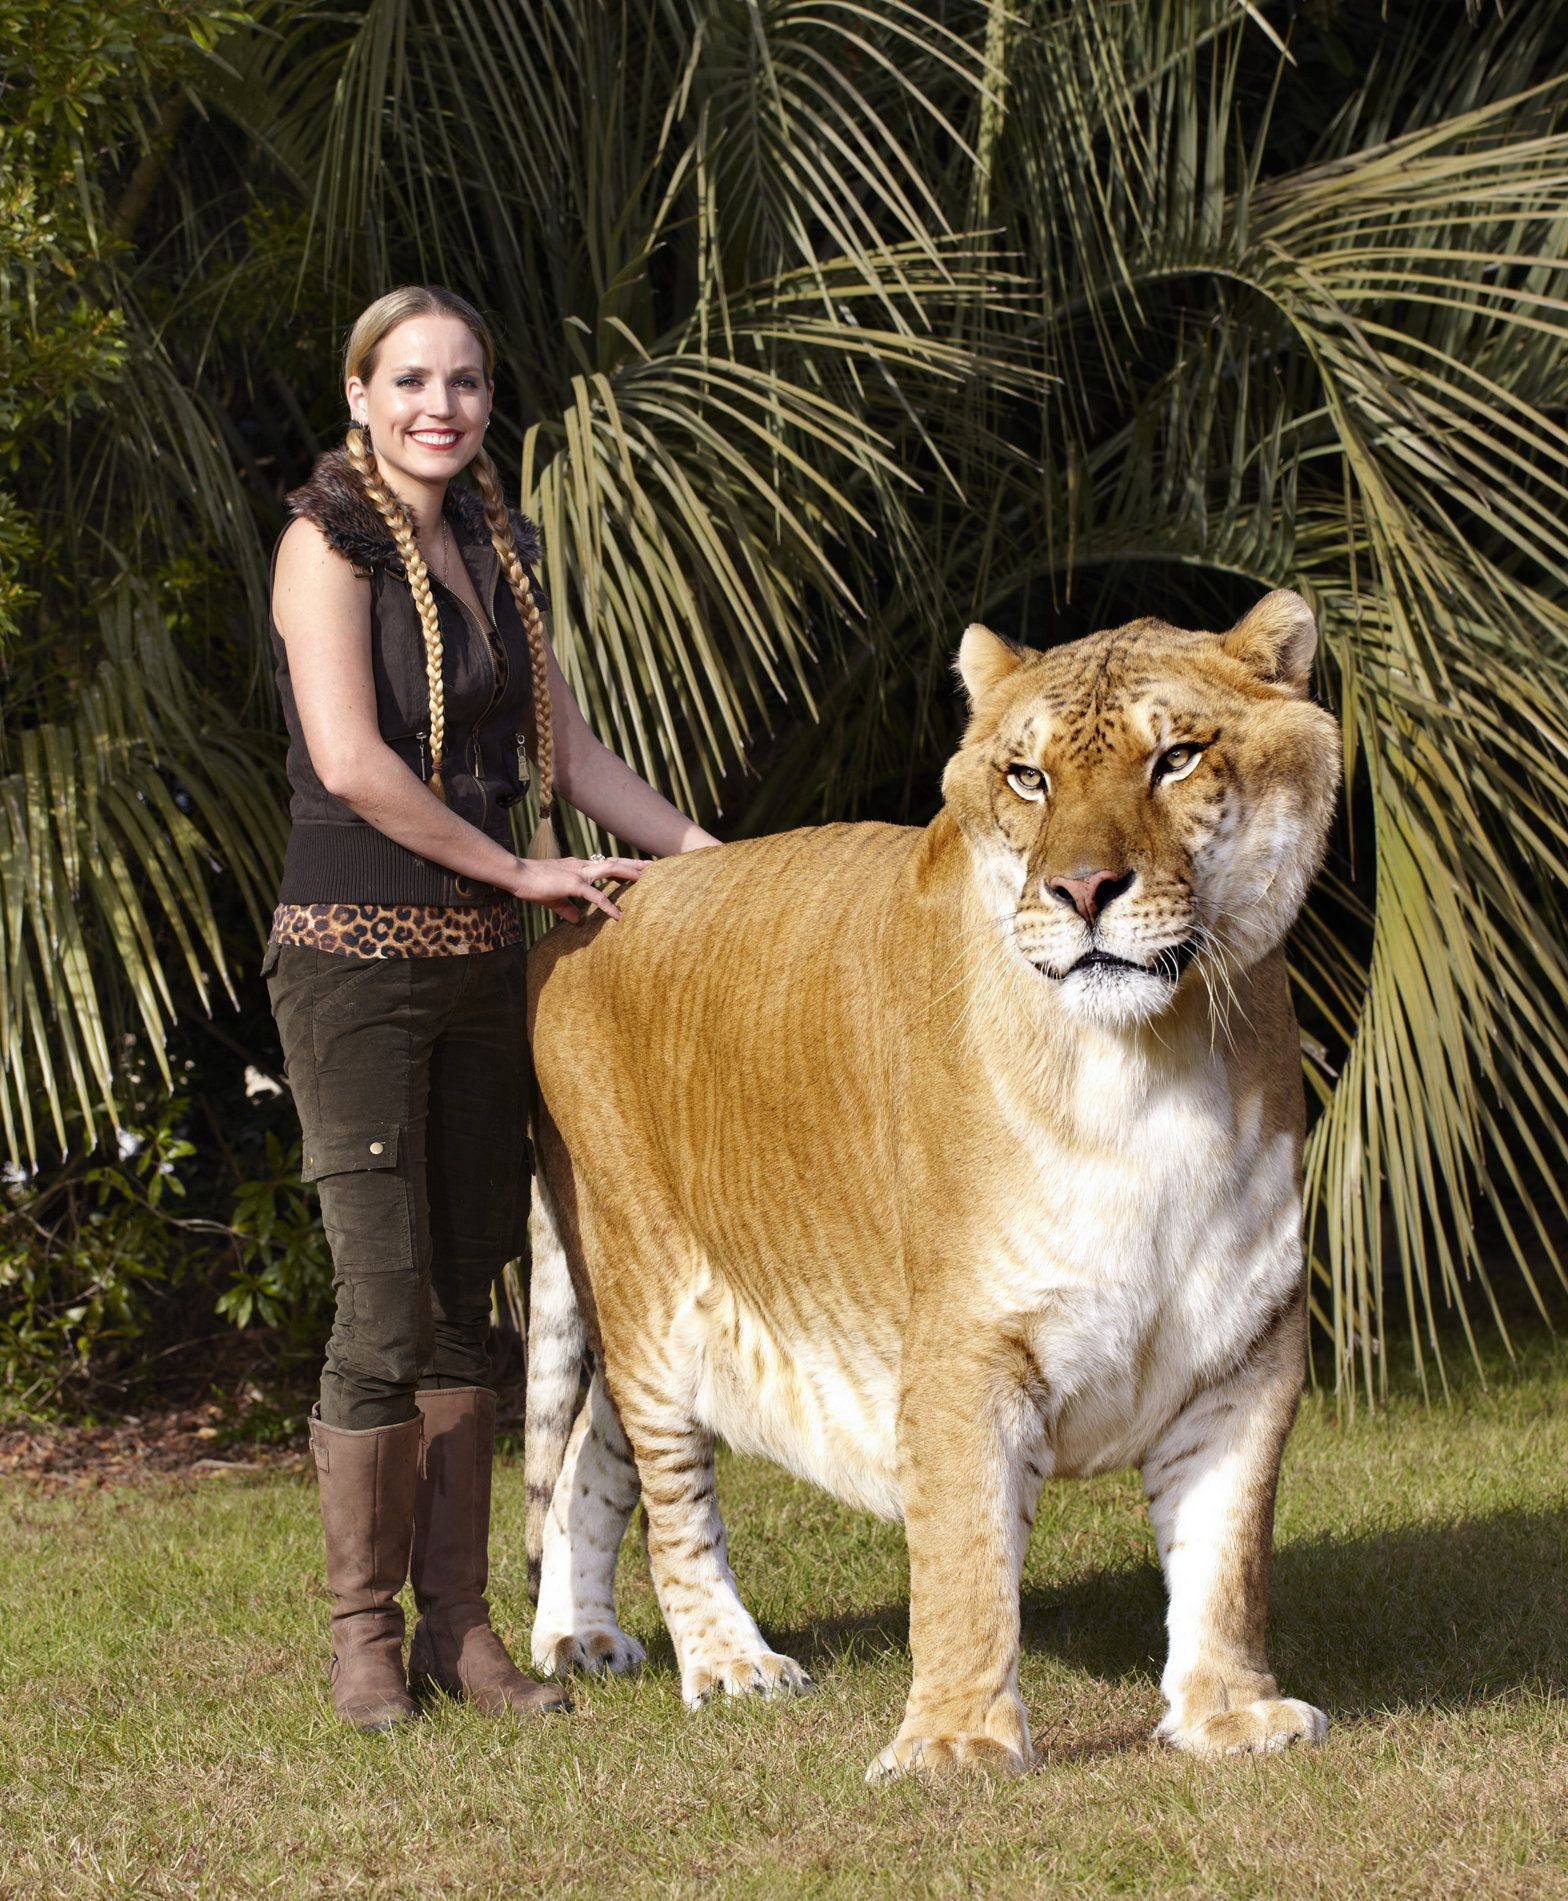 Biggest Cat In The World Guinness 2013 guinness world records® amazing animals | animals | pinterest